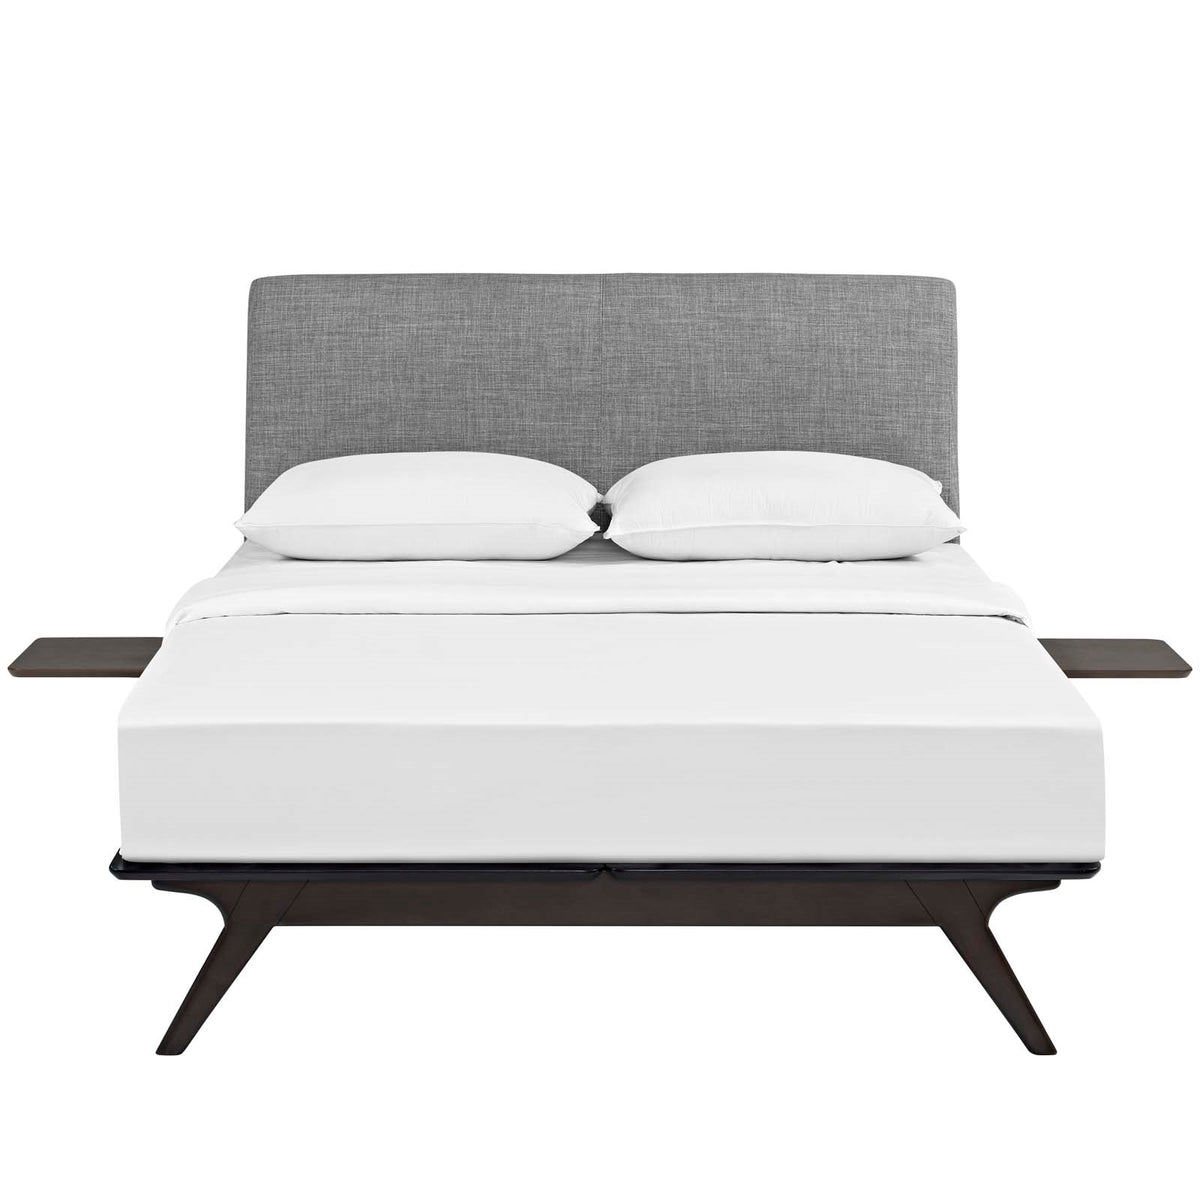 Lovo Queen Bed Set Capuccino Gray